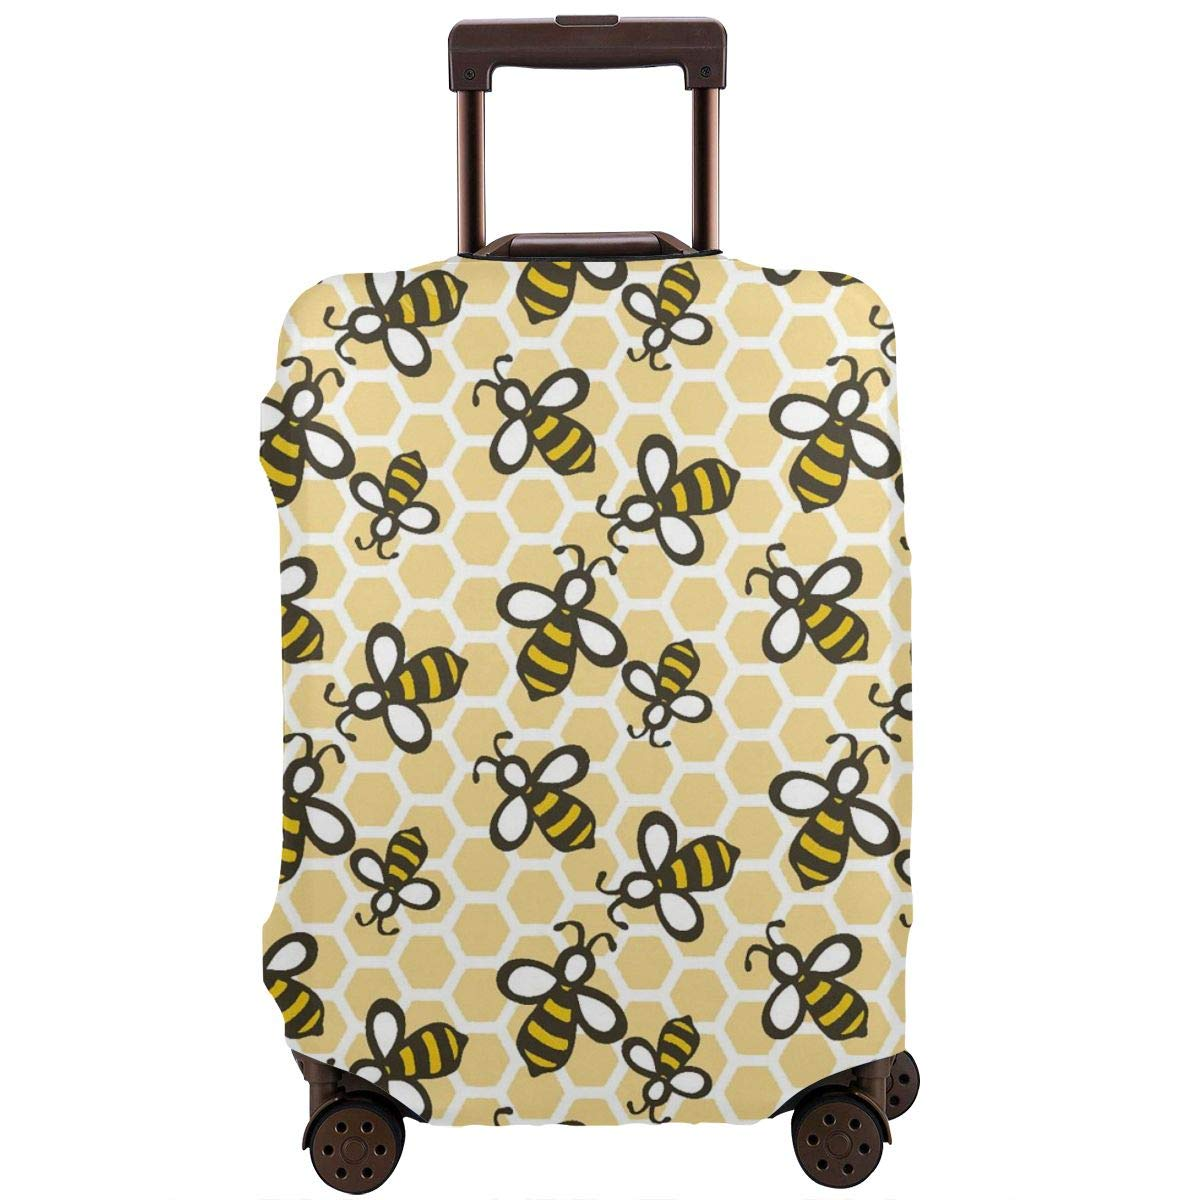 TYDhey Honey Bees Universal Fashion Luggage Suitcase Cover Protector